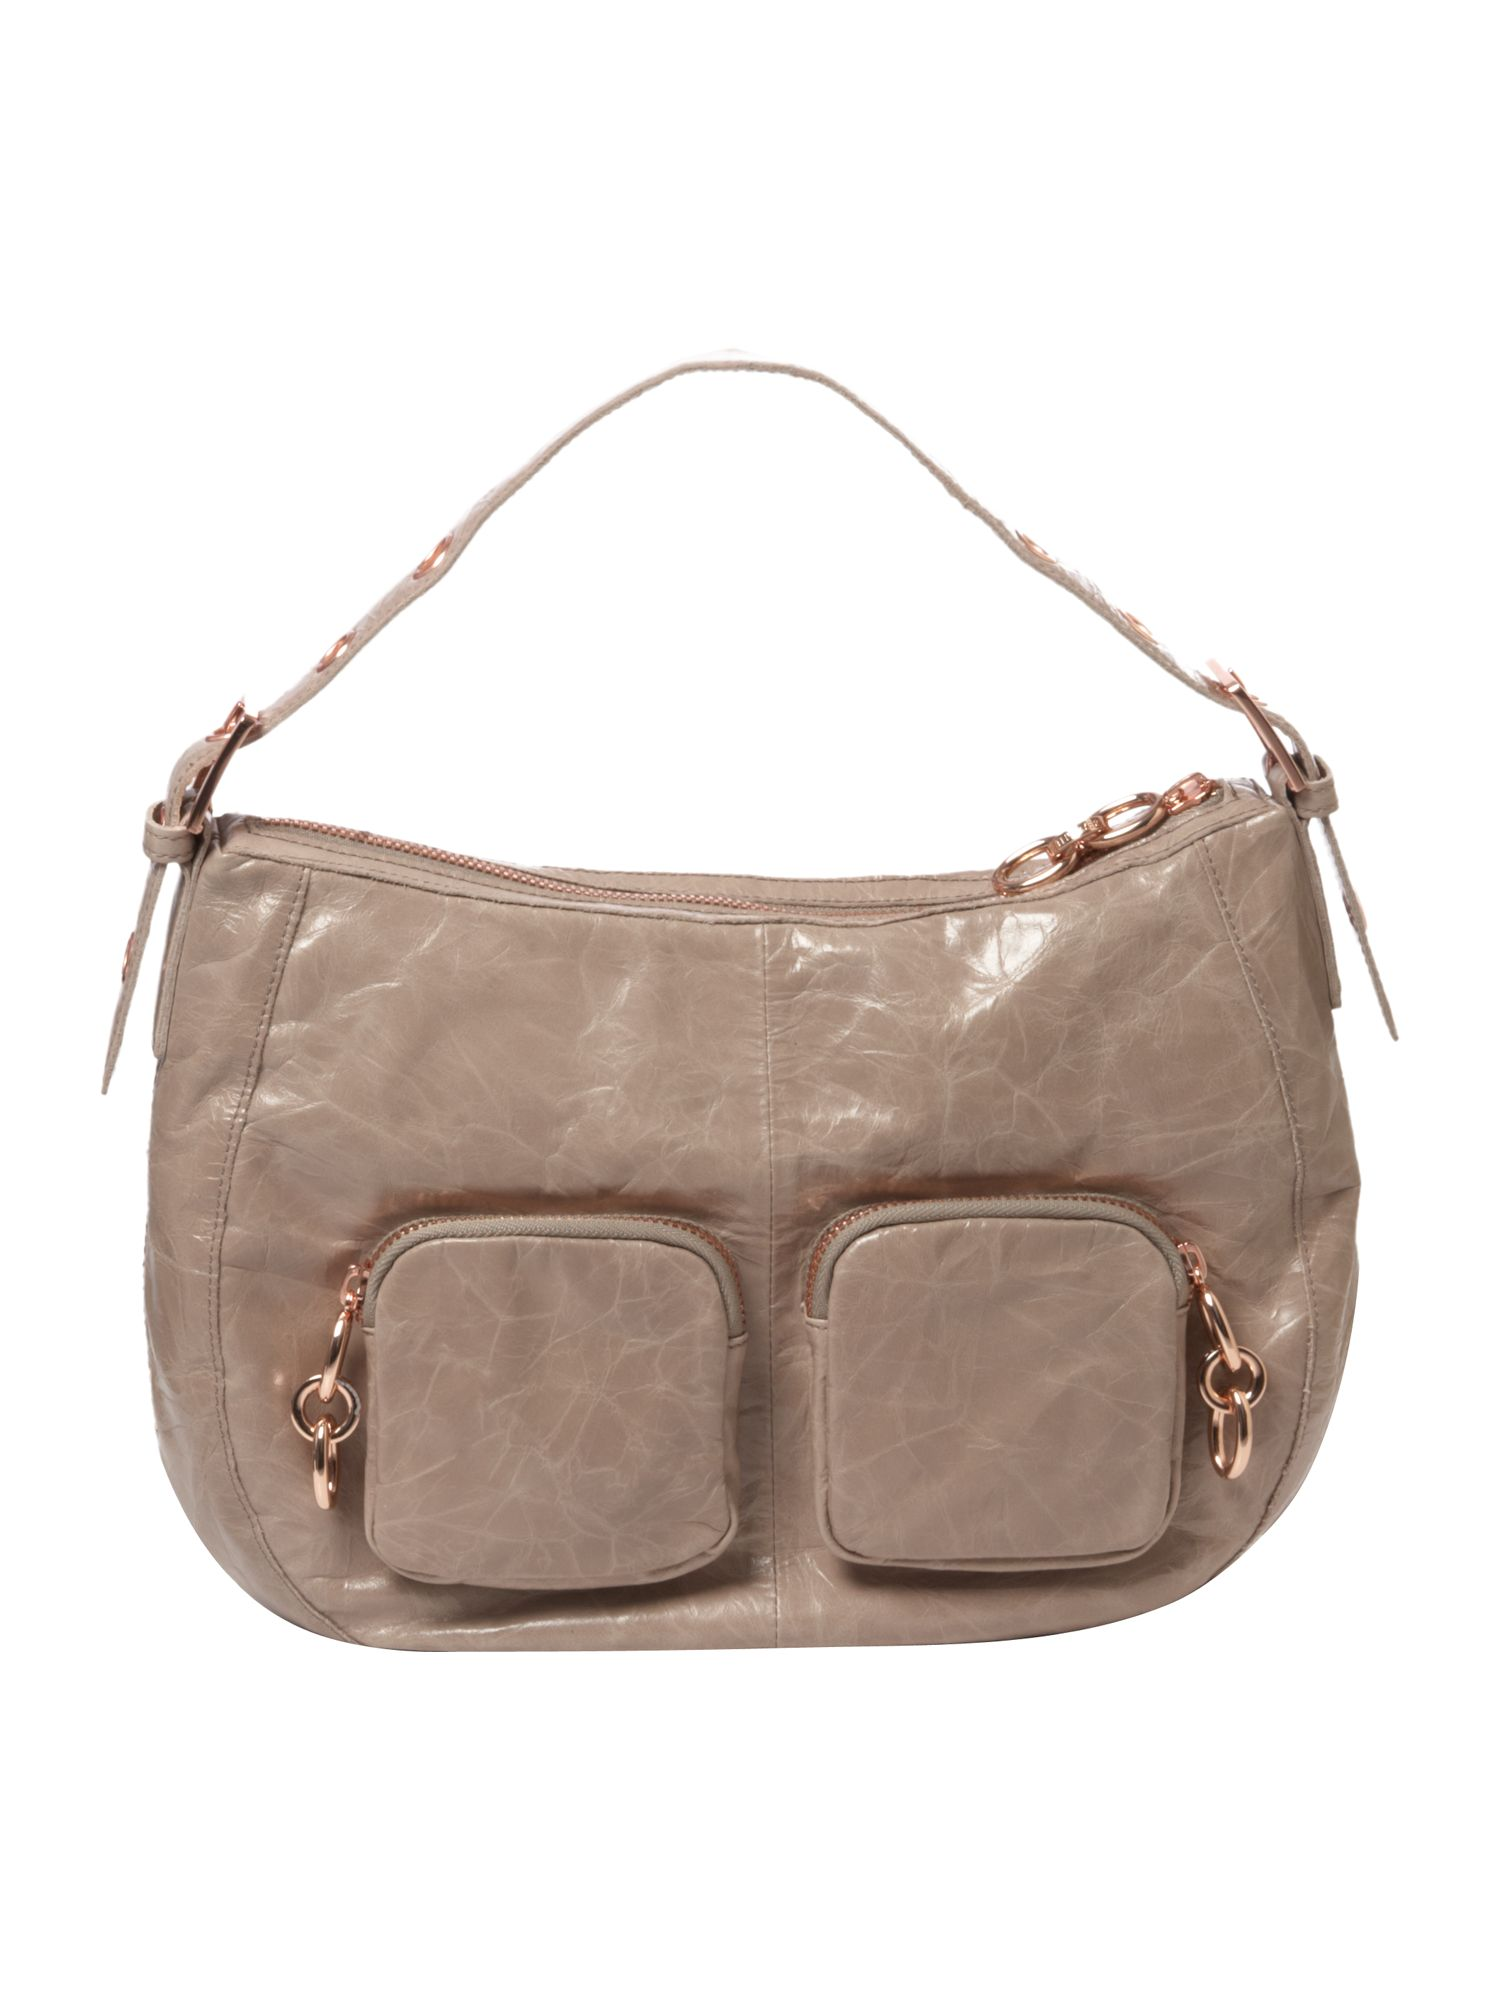 Ted Baker Fitch medium leather hobo bag product image